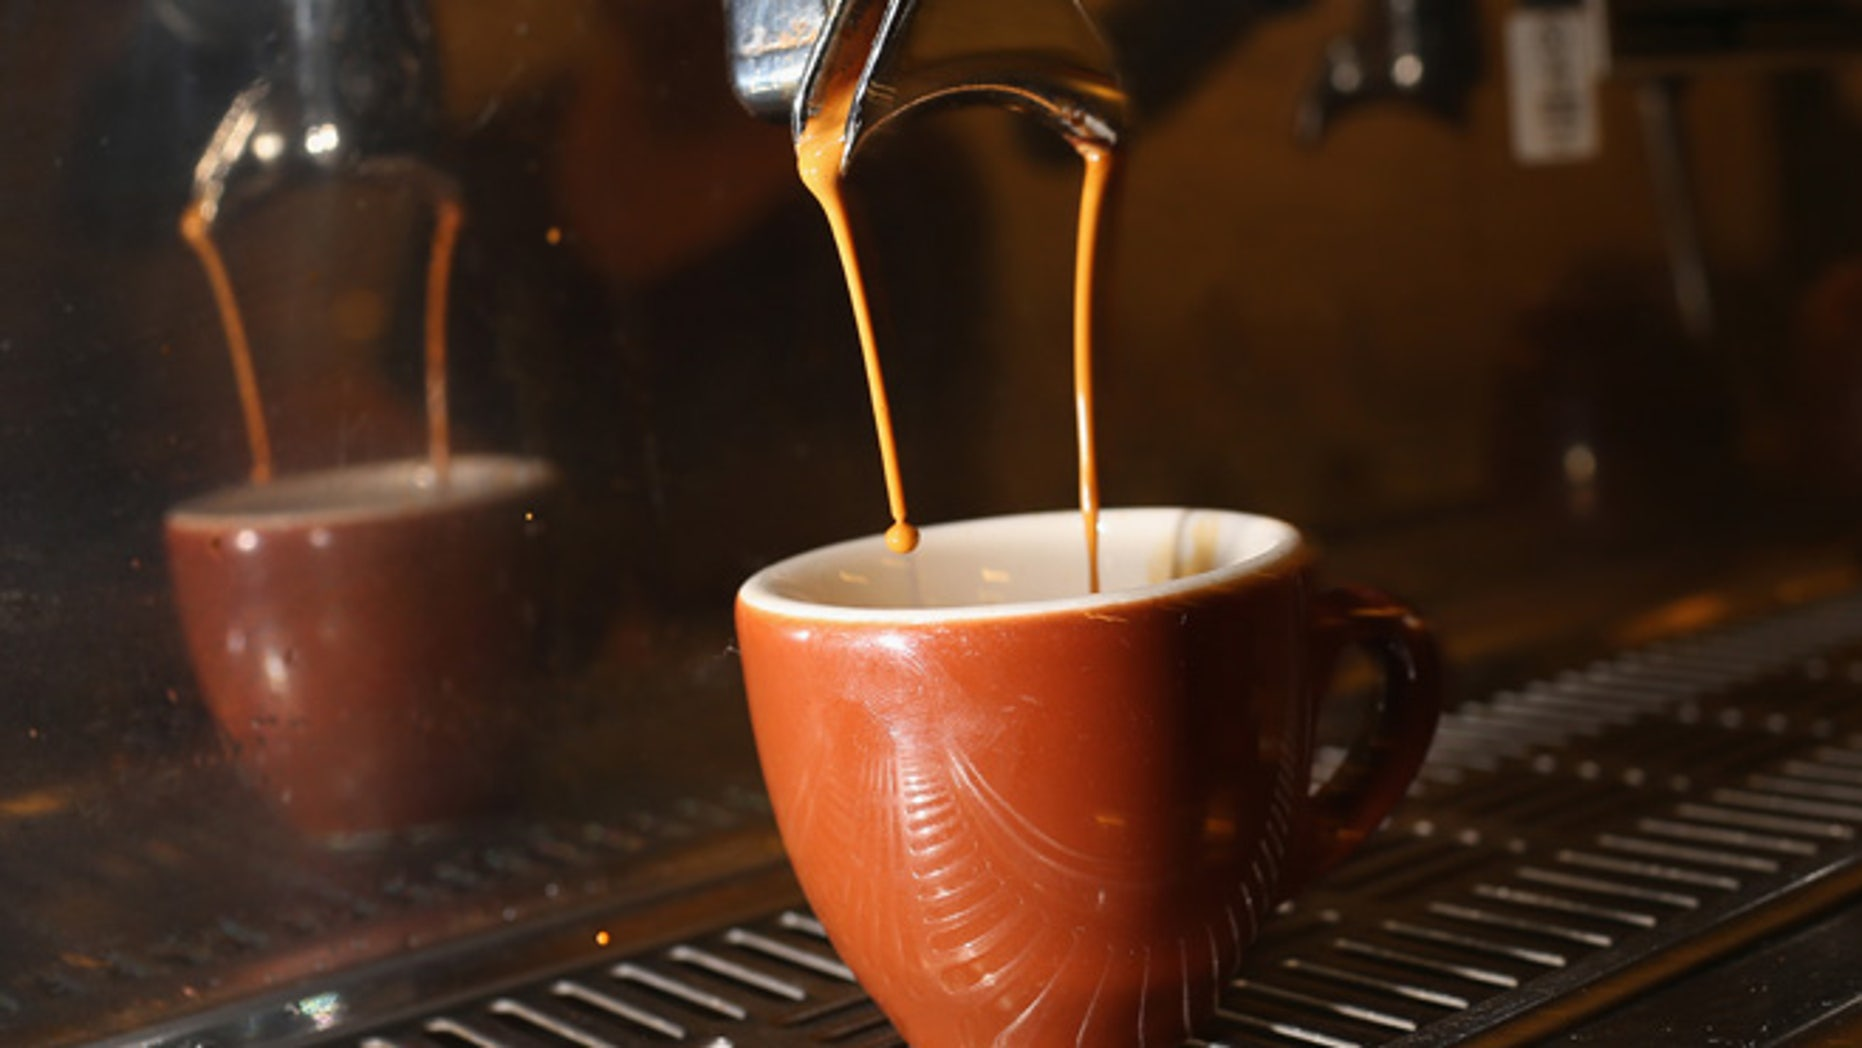 MIAMI, FL - SEPTEMBER 29:  An espresso coffee is seen at Eternity Coffee Roasters during National Coffee Day on September 29, 2014 in Miami, Florida.  The day is for coffee drinkers to celebrate and enjoy the popular beverage which 50% of the population, equivalent to 150 million Americans, drink espresso, cappuccino, latte, or iced/cold coffees.  (Photo by Joe Raedle/Getty Images)